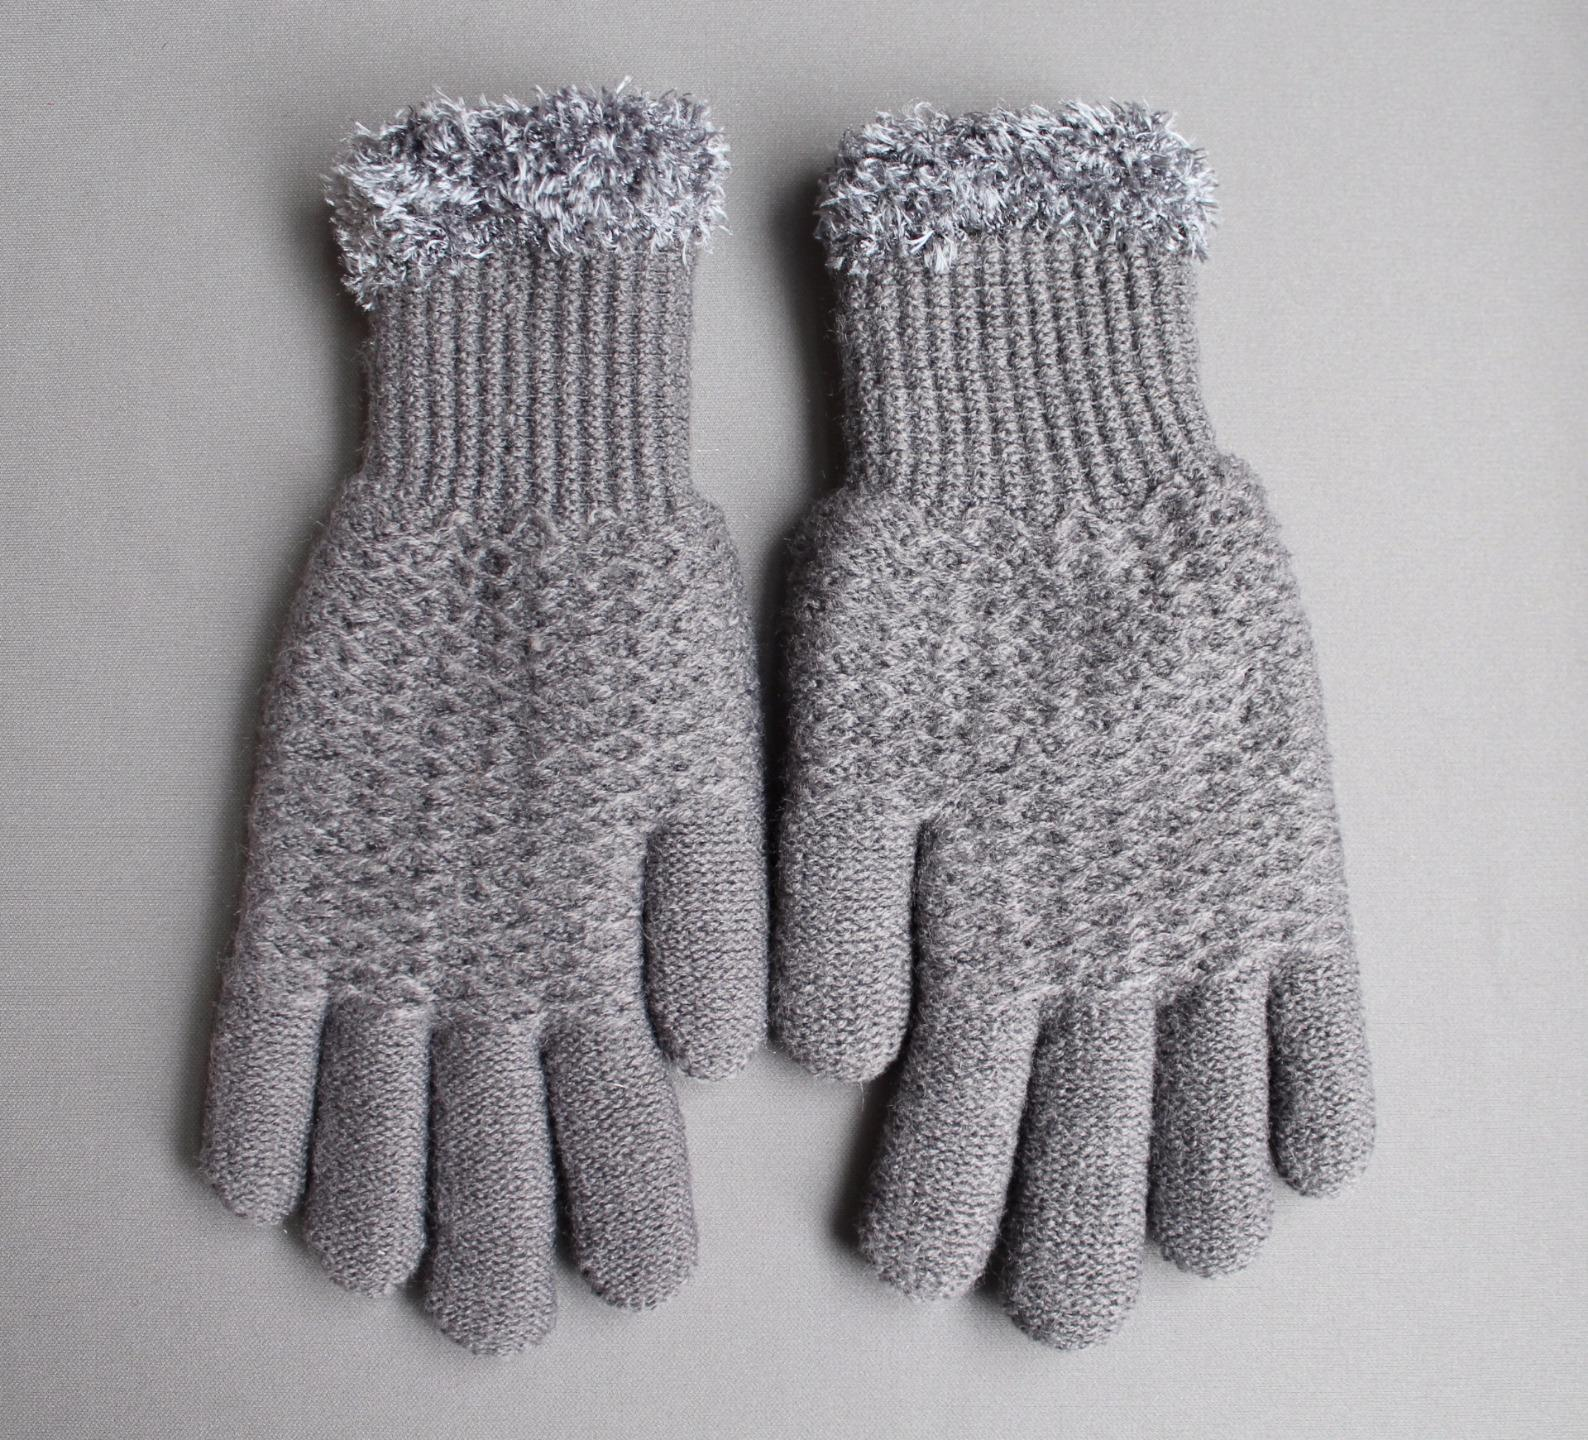 14.84$  Watch here - http://vivwm.justgood.pw/vig/item.php?t=k1n25sz18102 - Dk Grey Gray lined gloves faux fur knit stretch gloves winter super warm ladies 14.84$